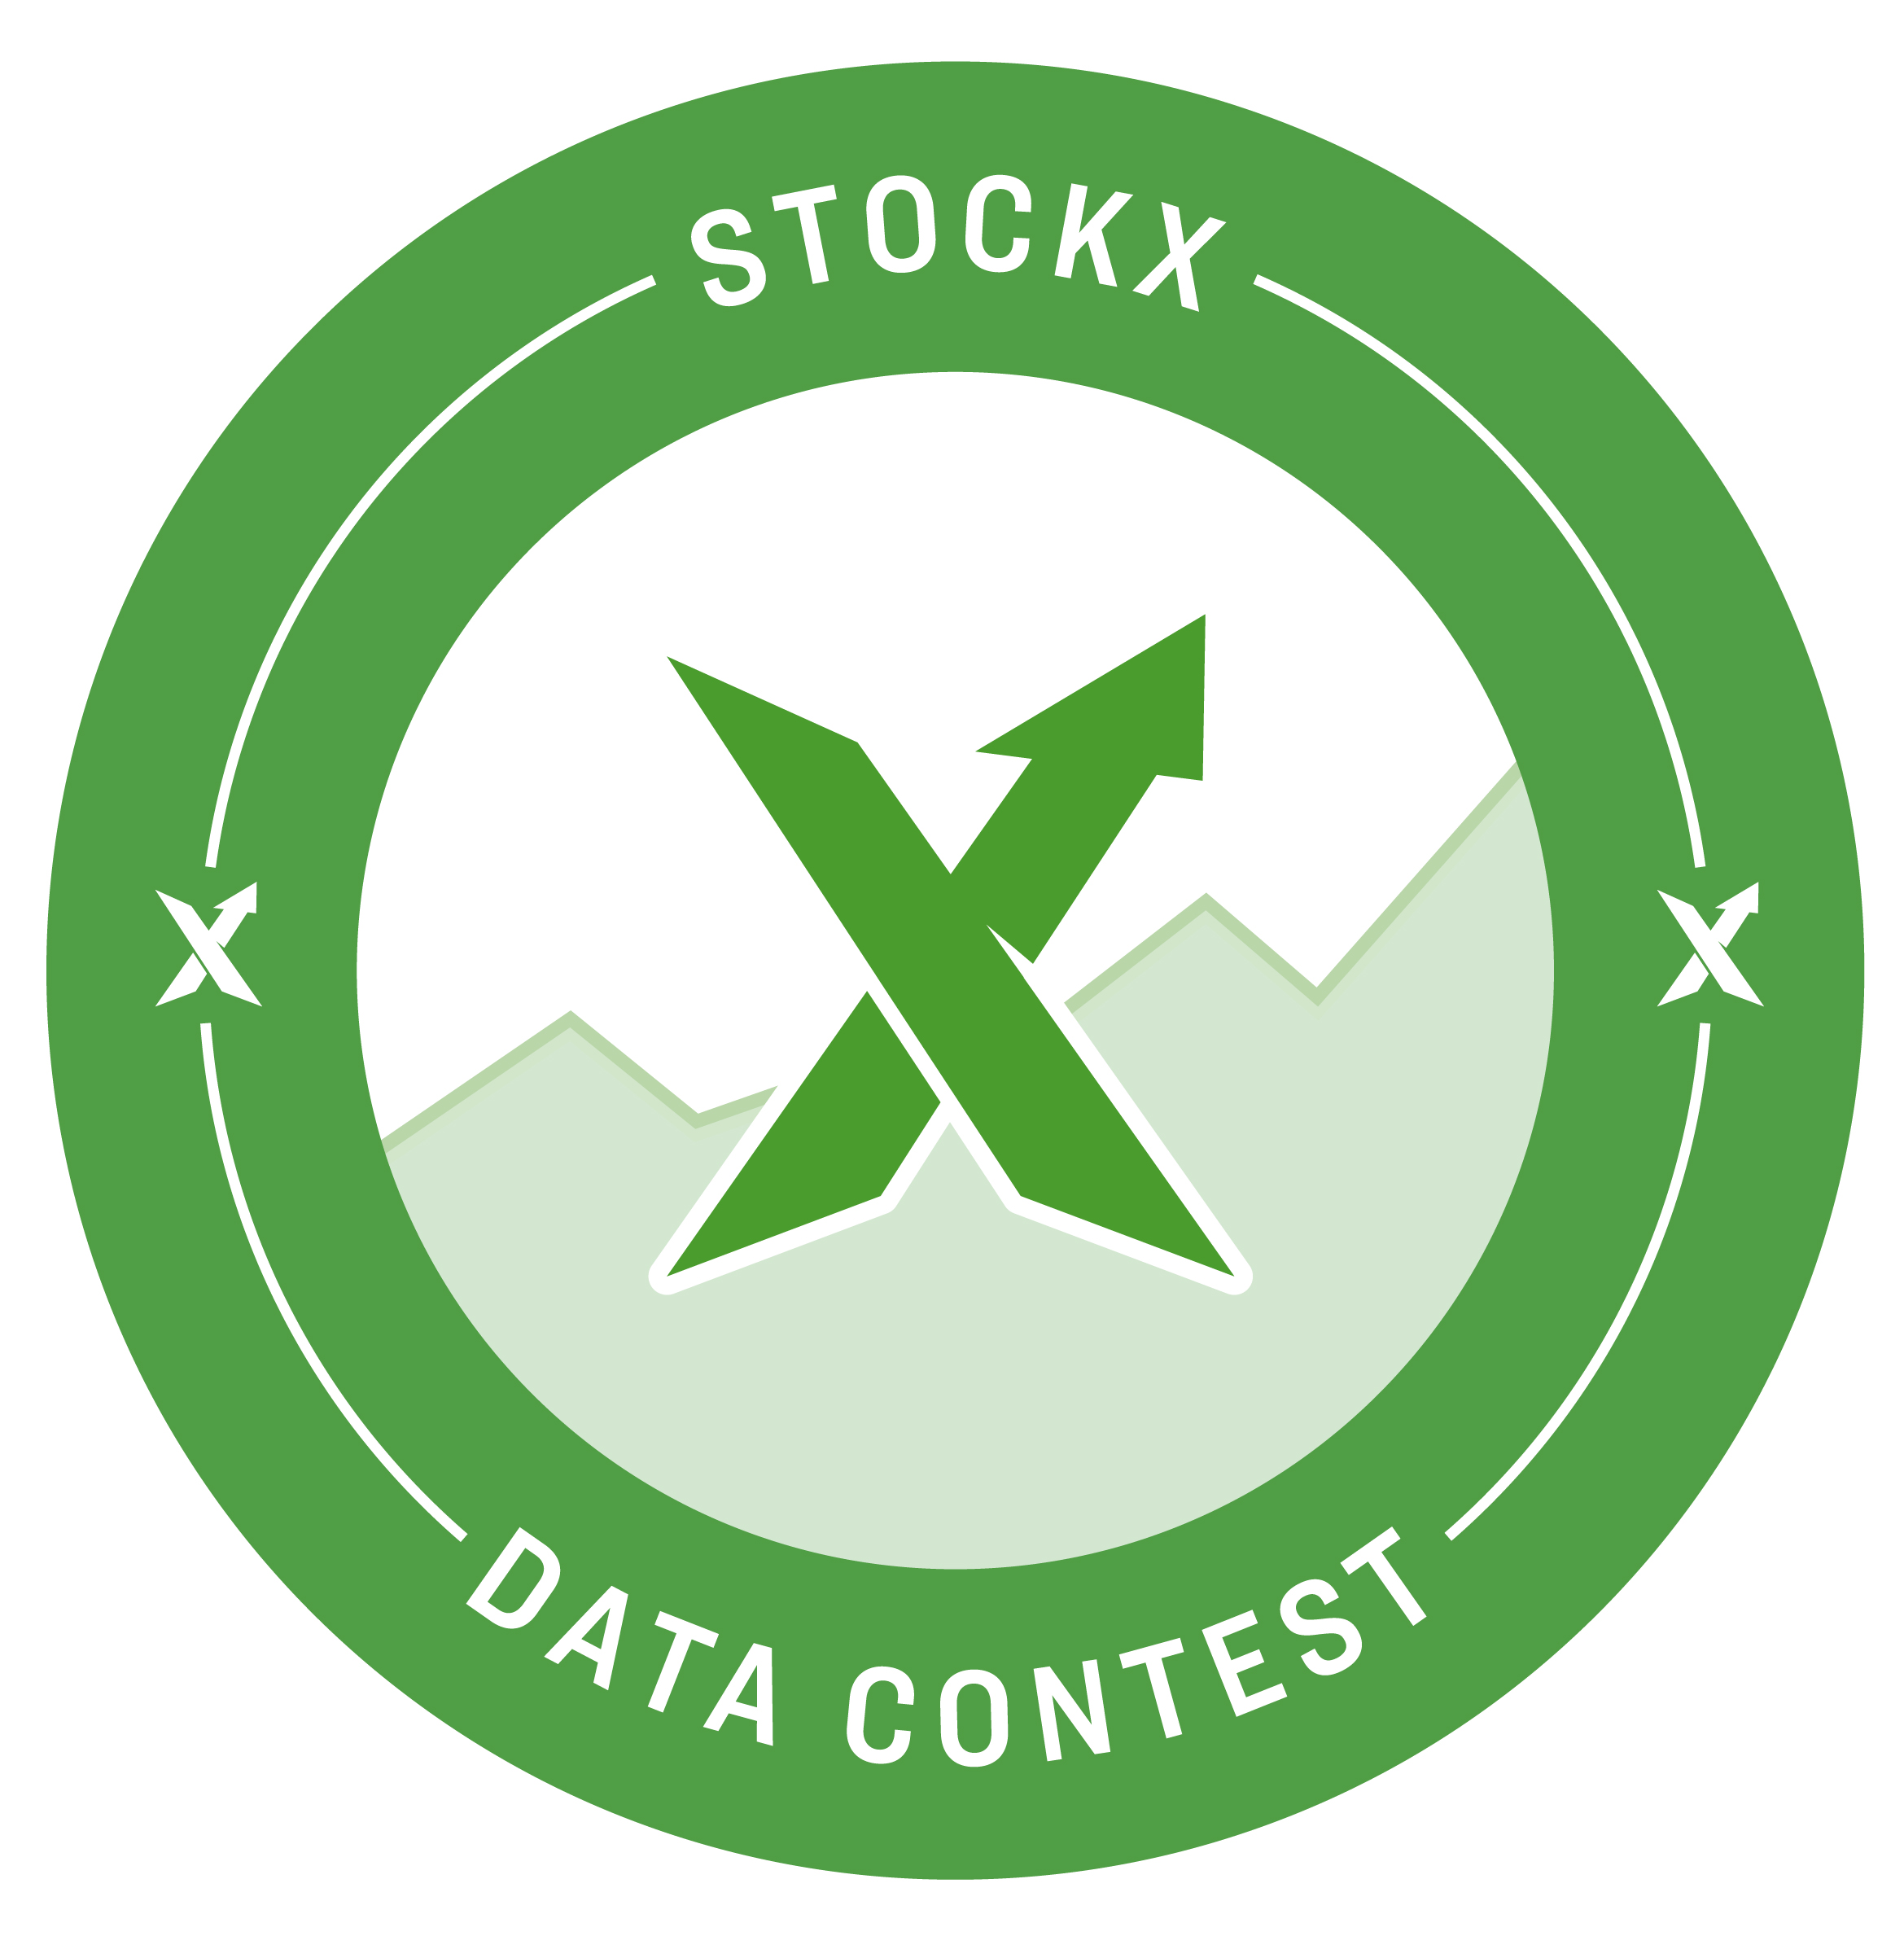 Attention Data Nerds: The StockX Data Contest Is Back